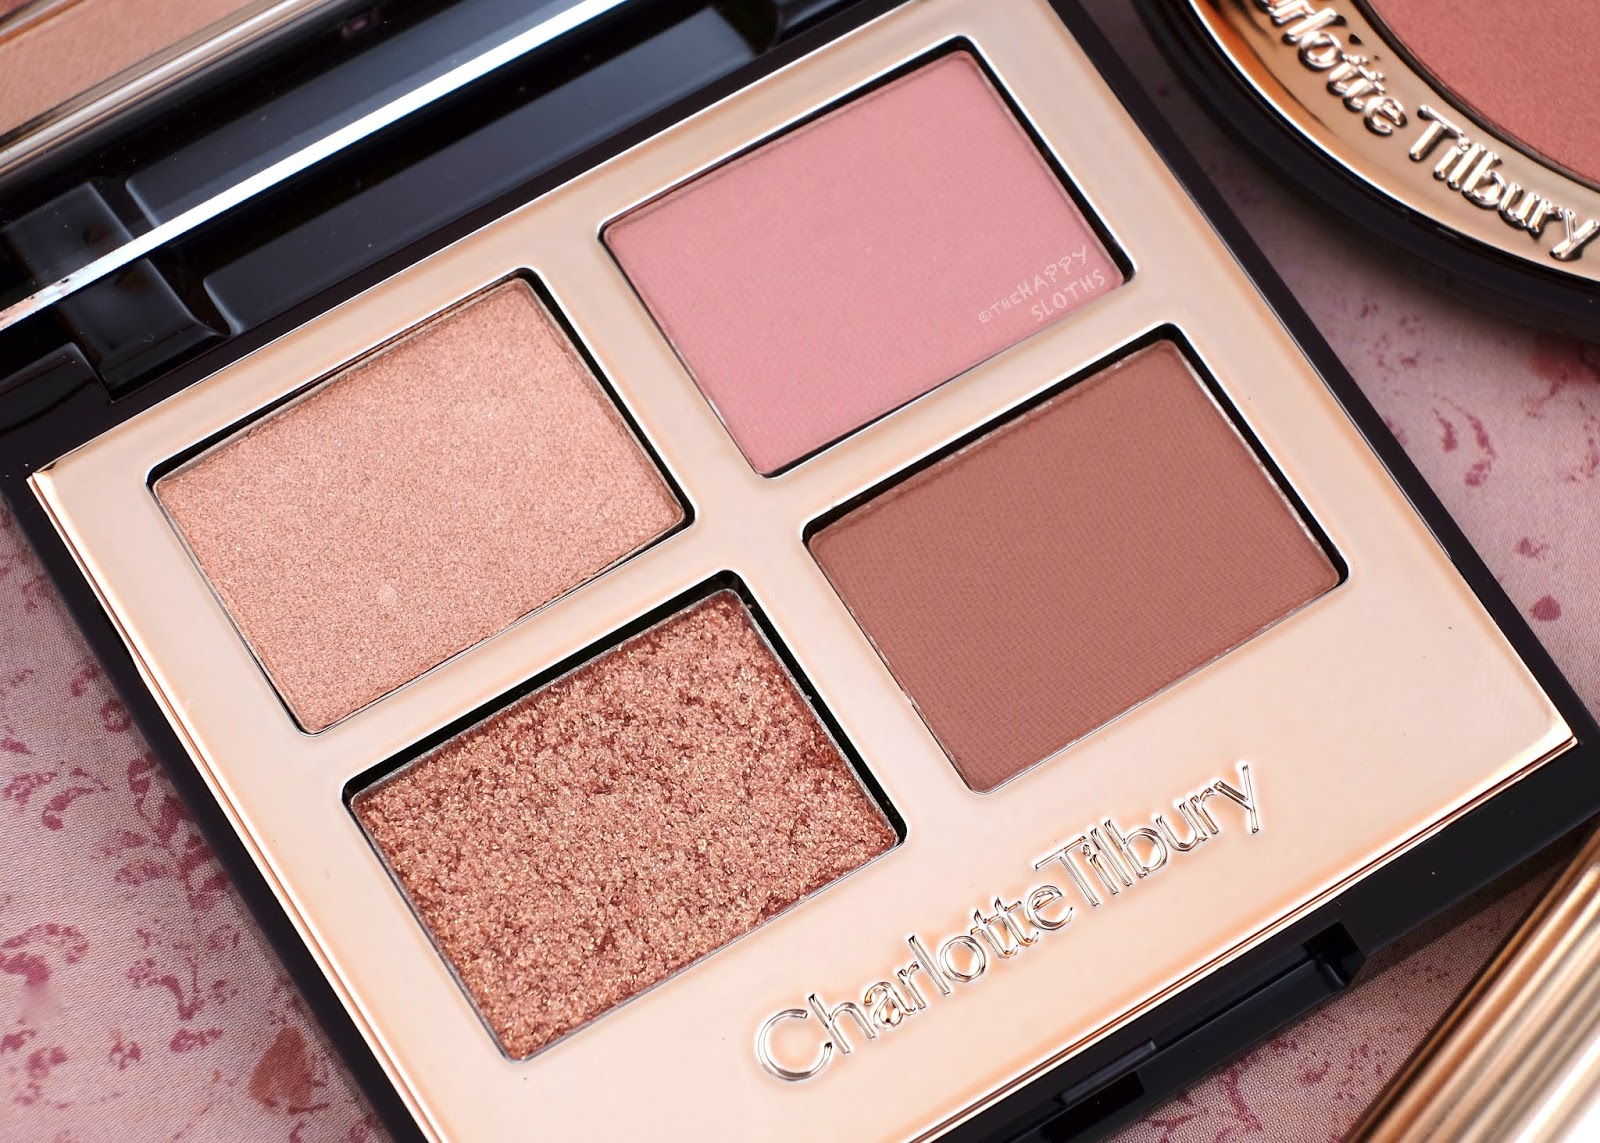 Charlotte Tilbury | Pillow Talk Luxury Eyeshadow Palette: Review and Swatches